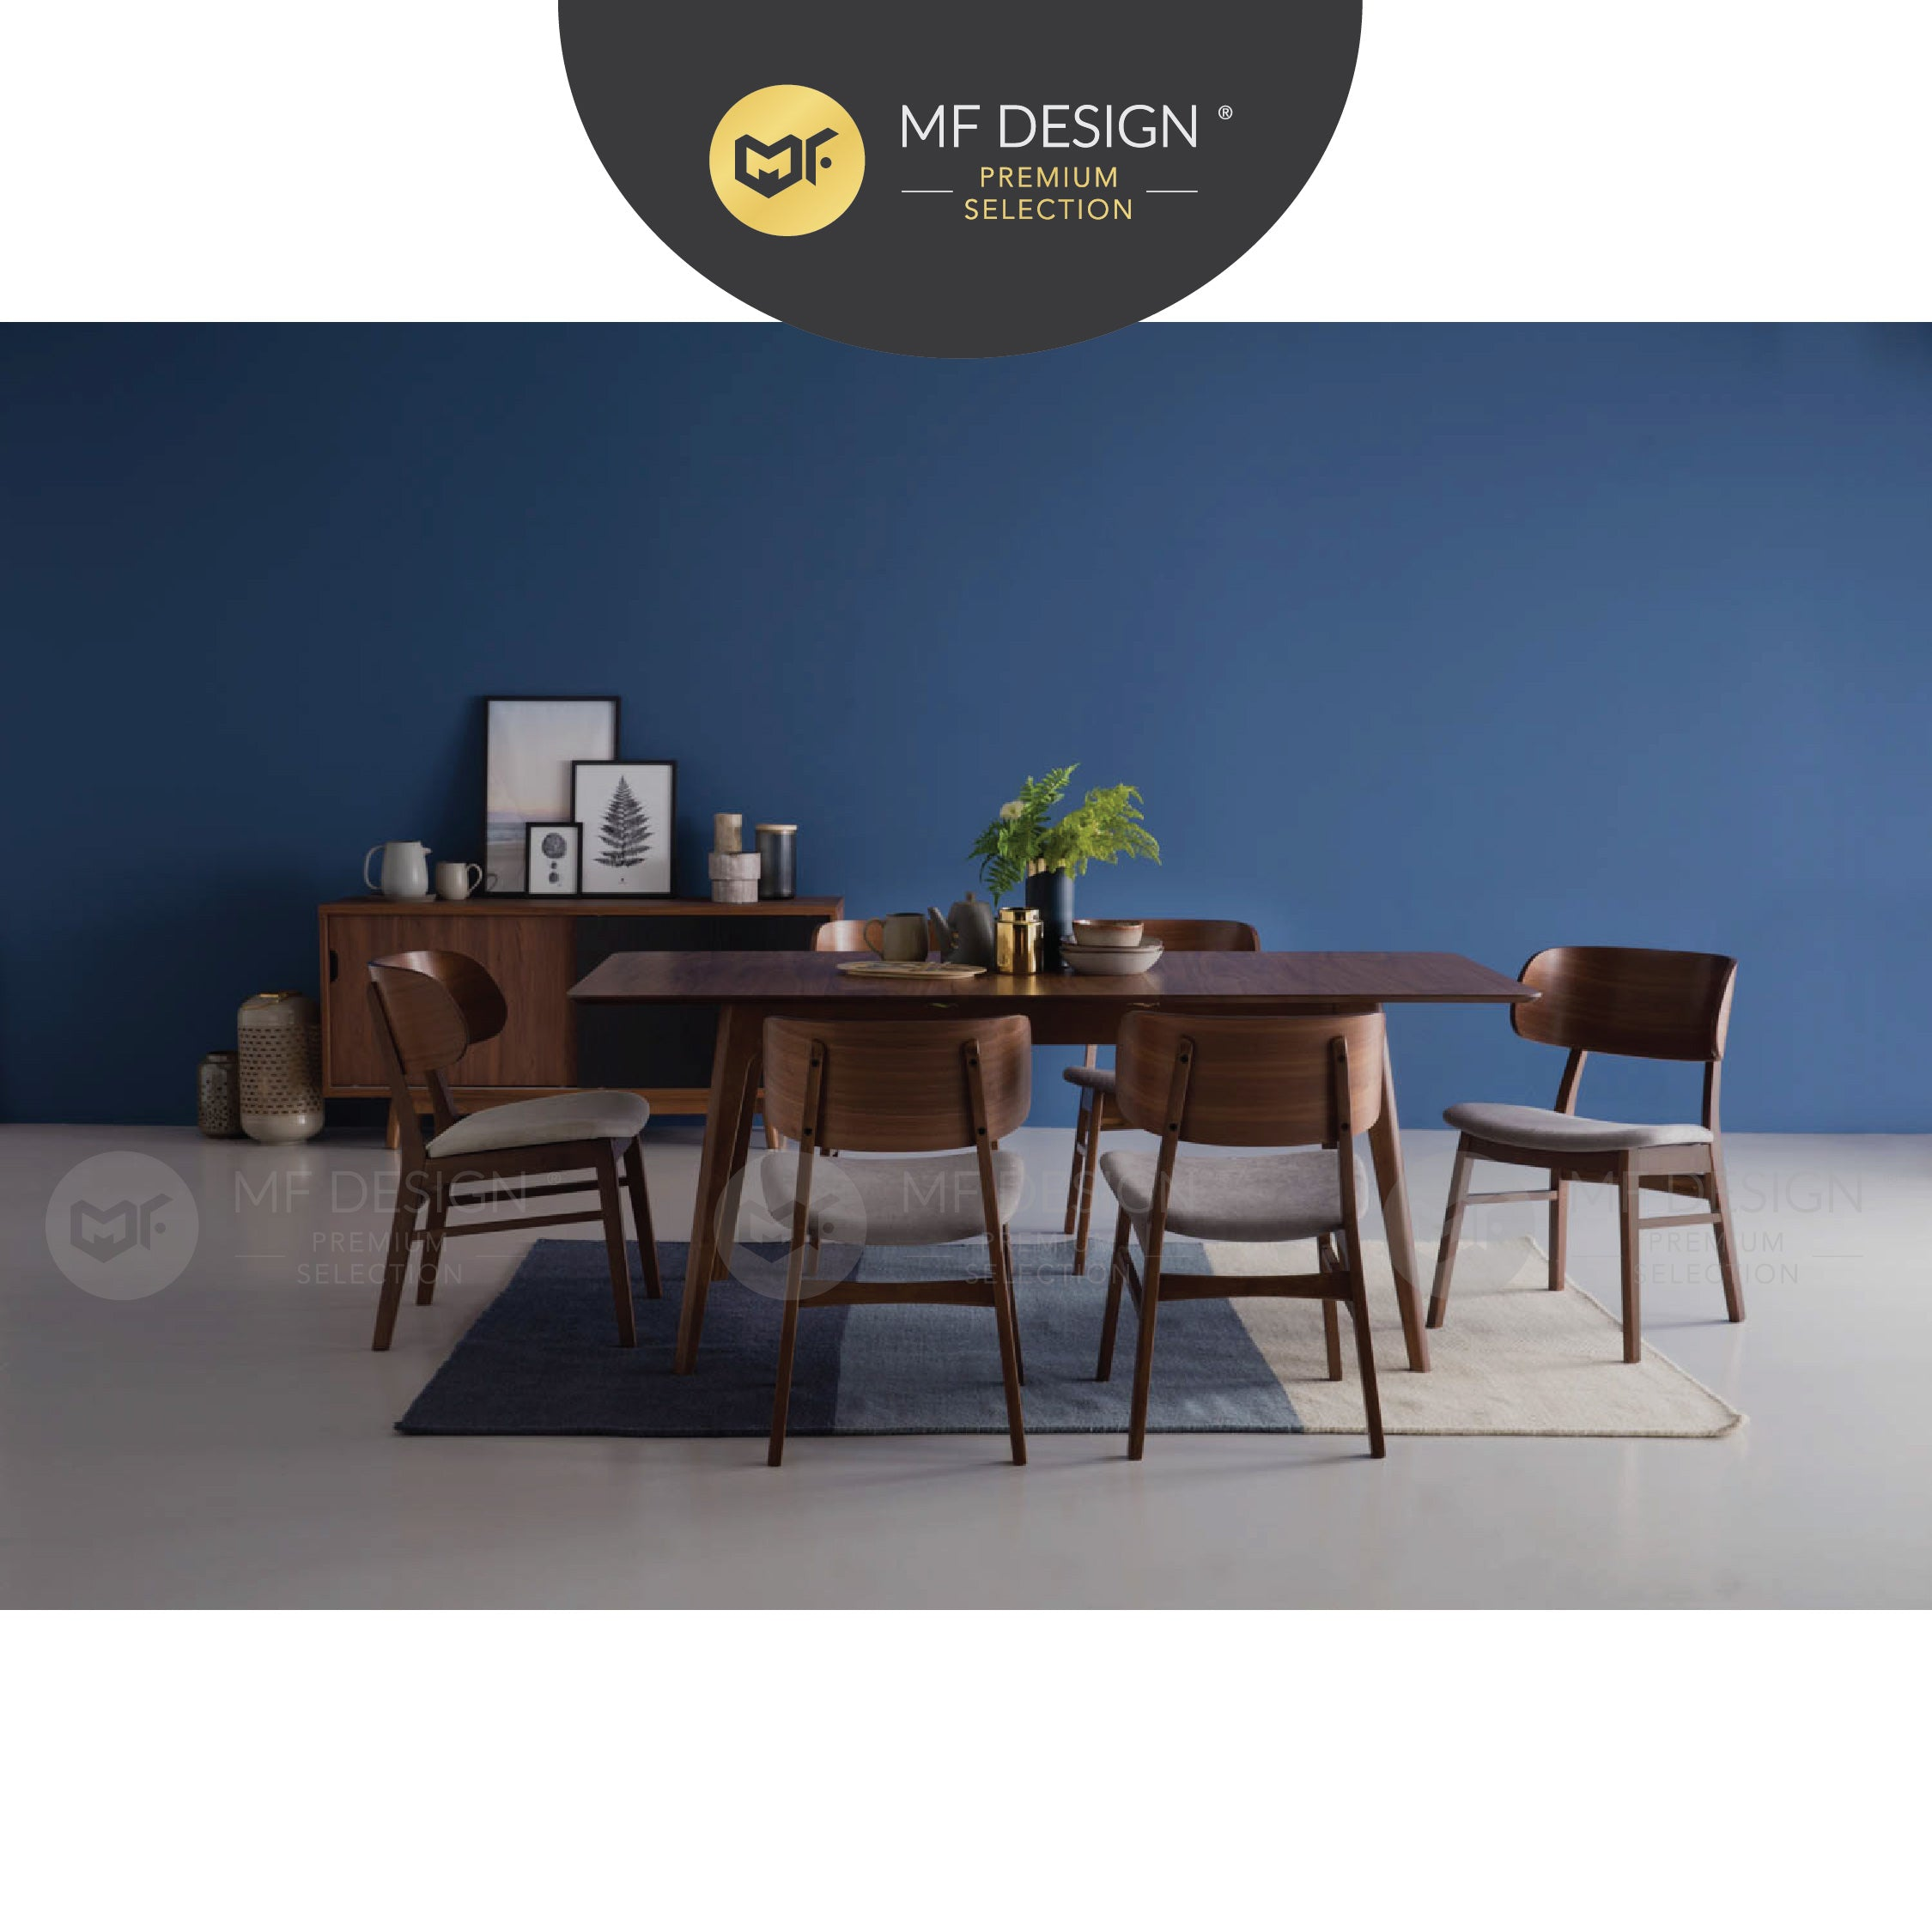 MFD Premium Aiden Dining Chair / Wooden Chair / Solid Rubber Wood / Kerusi Makan Kayu Getah / Living Room / Scandinavian